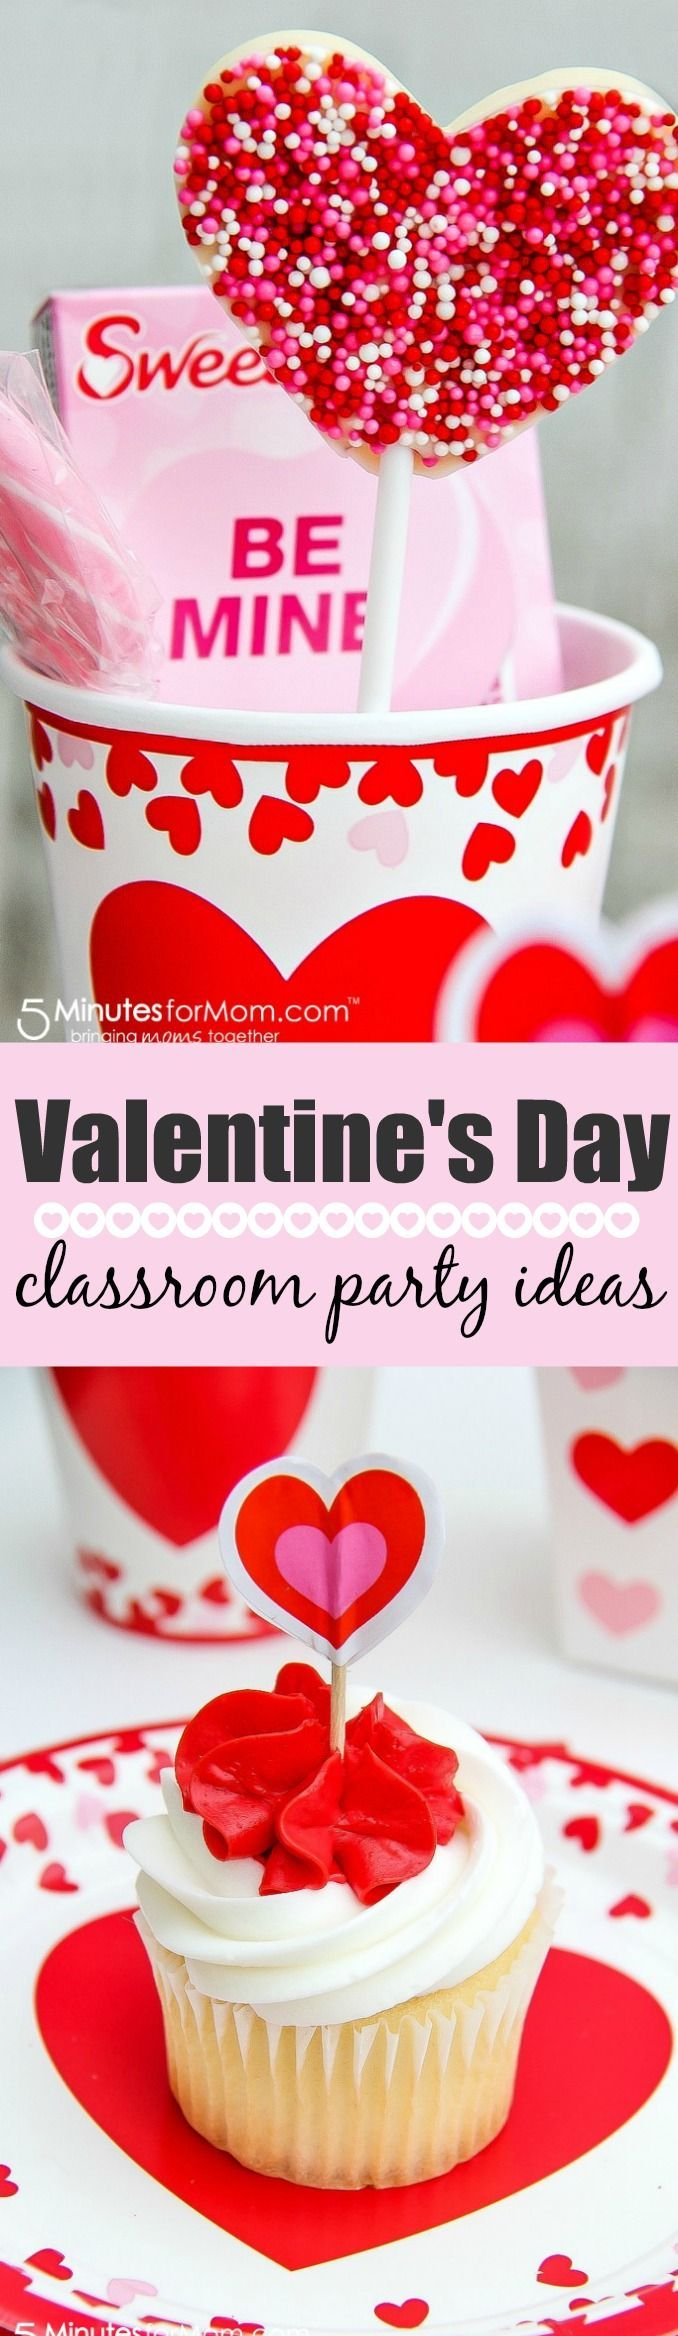 easy valentines day ideas for classroom parties - Valentine Day Special